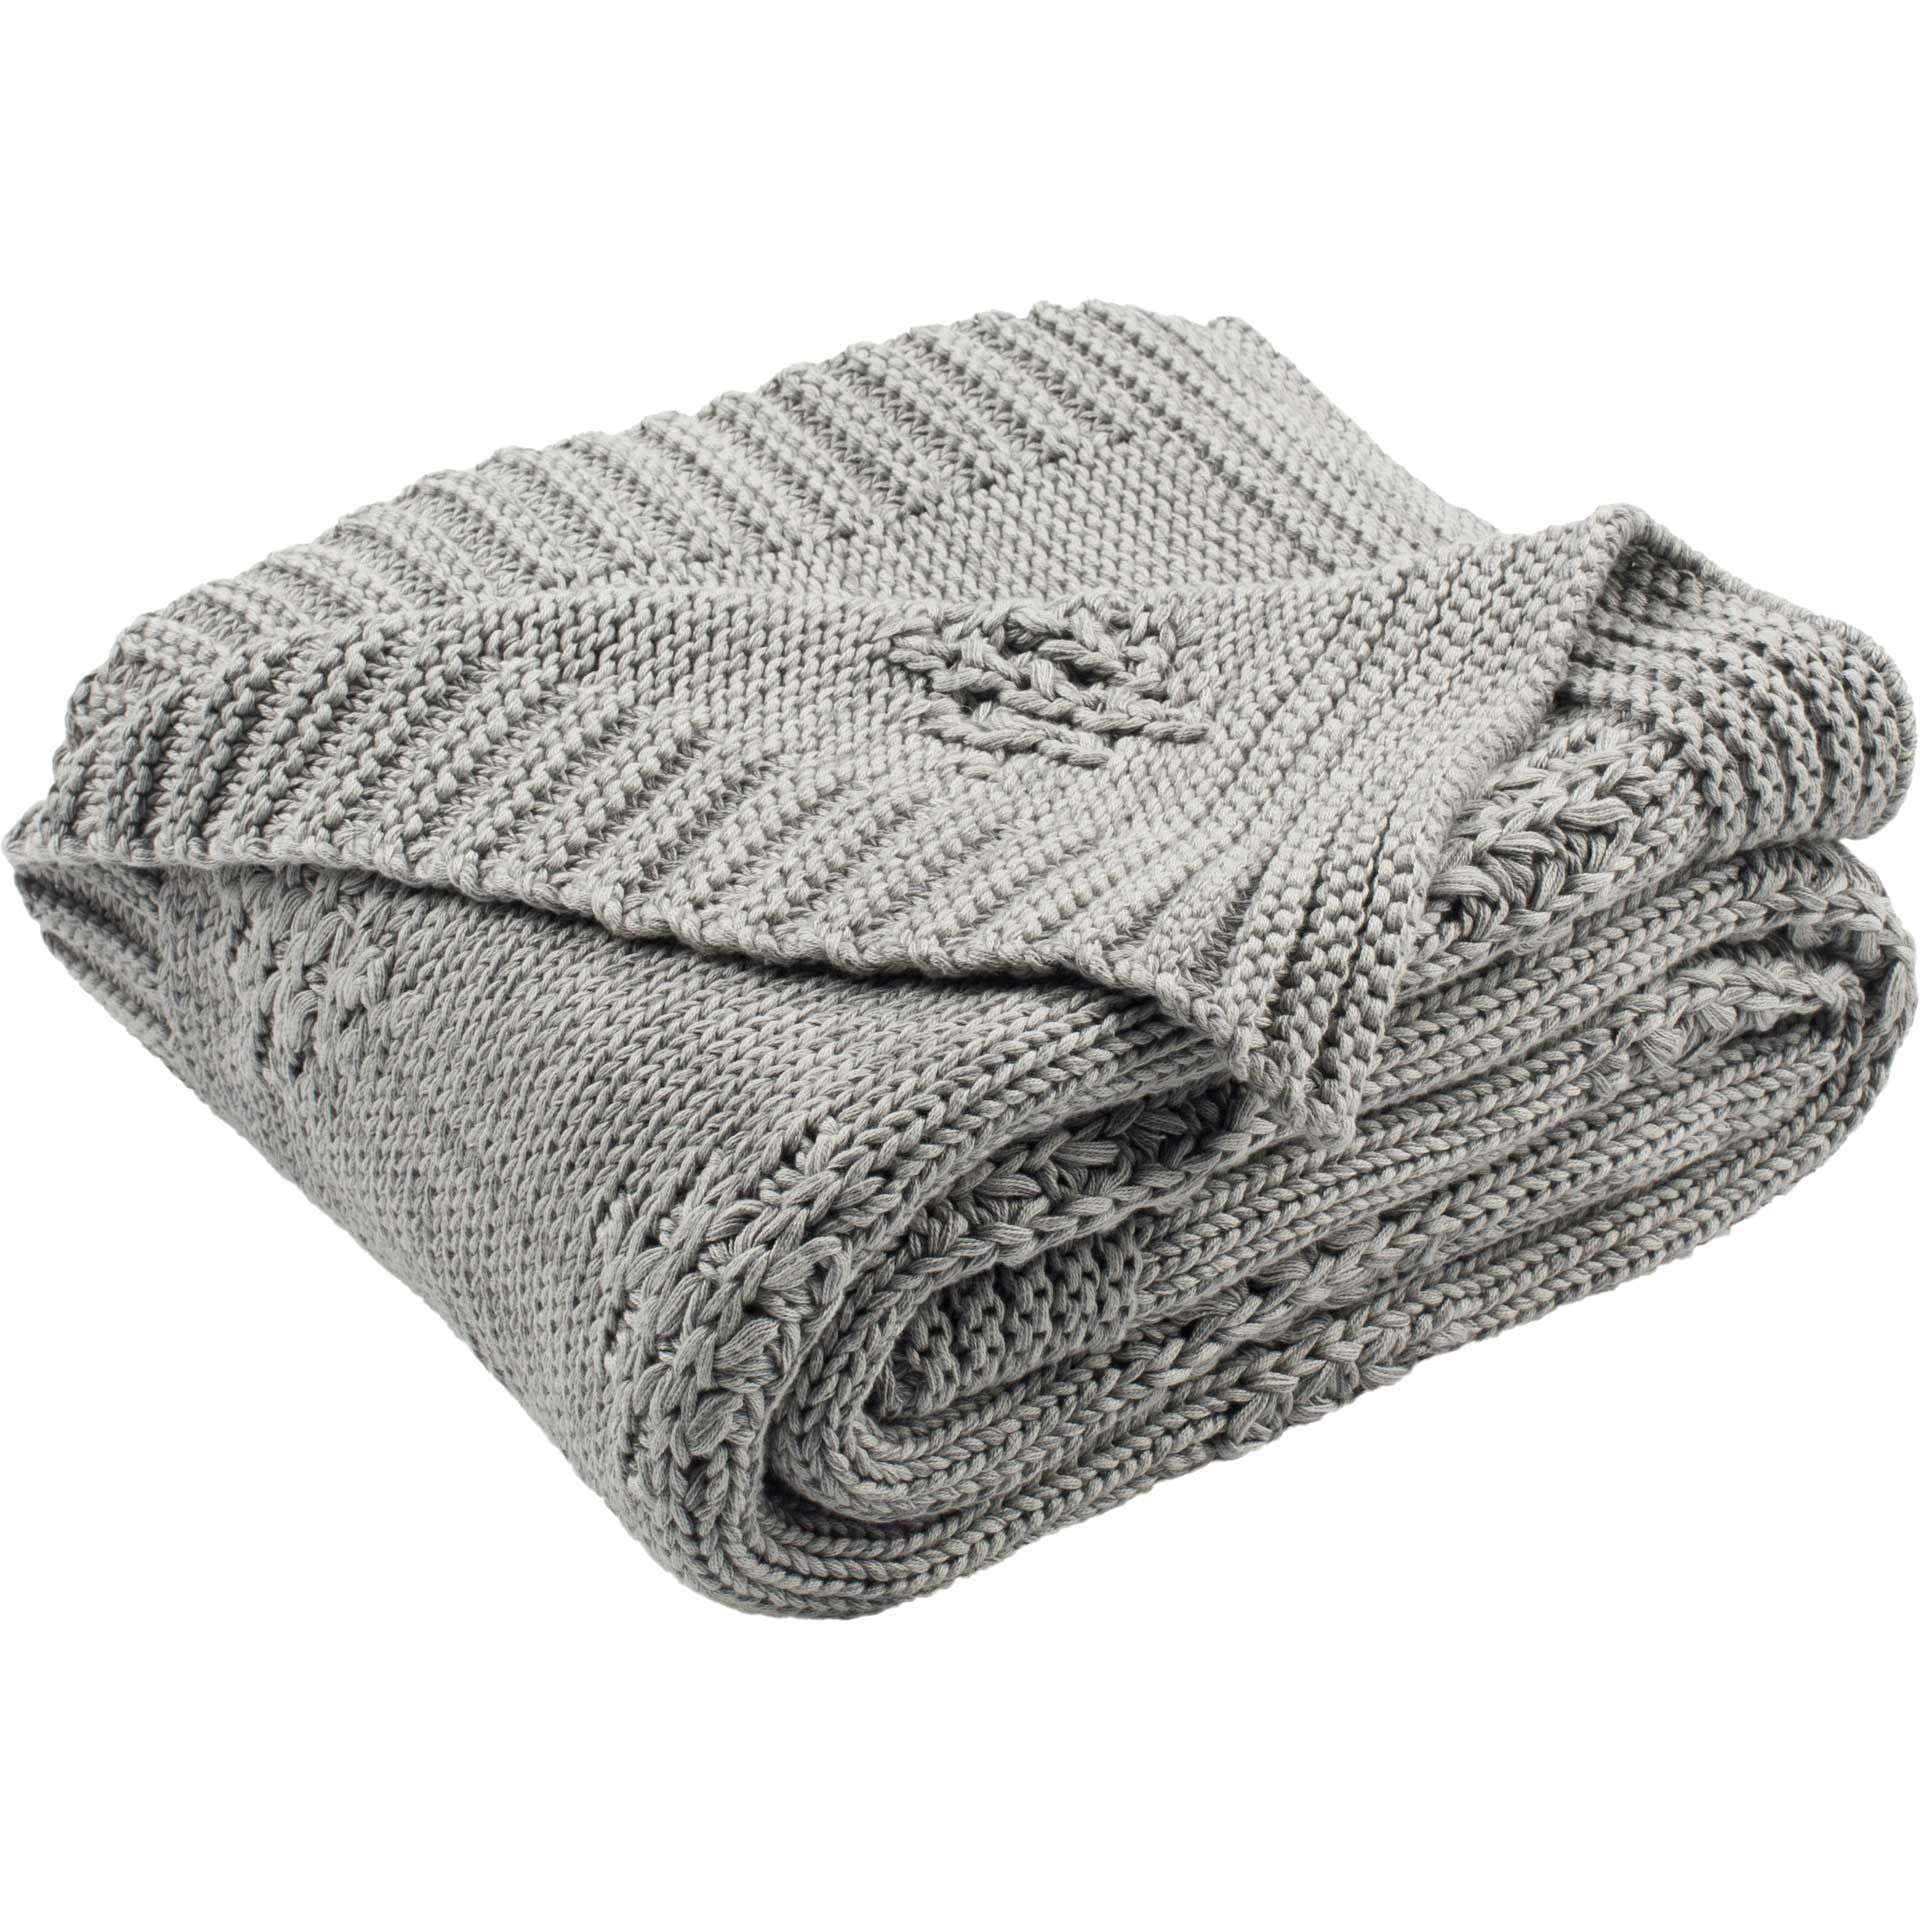 Colin Knit Throw Medium Gray/Light Gray